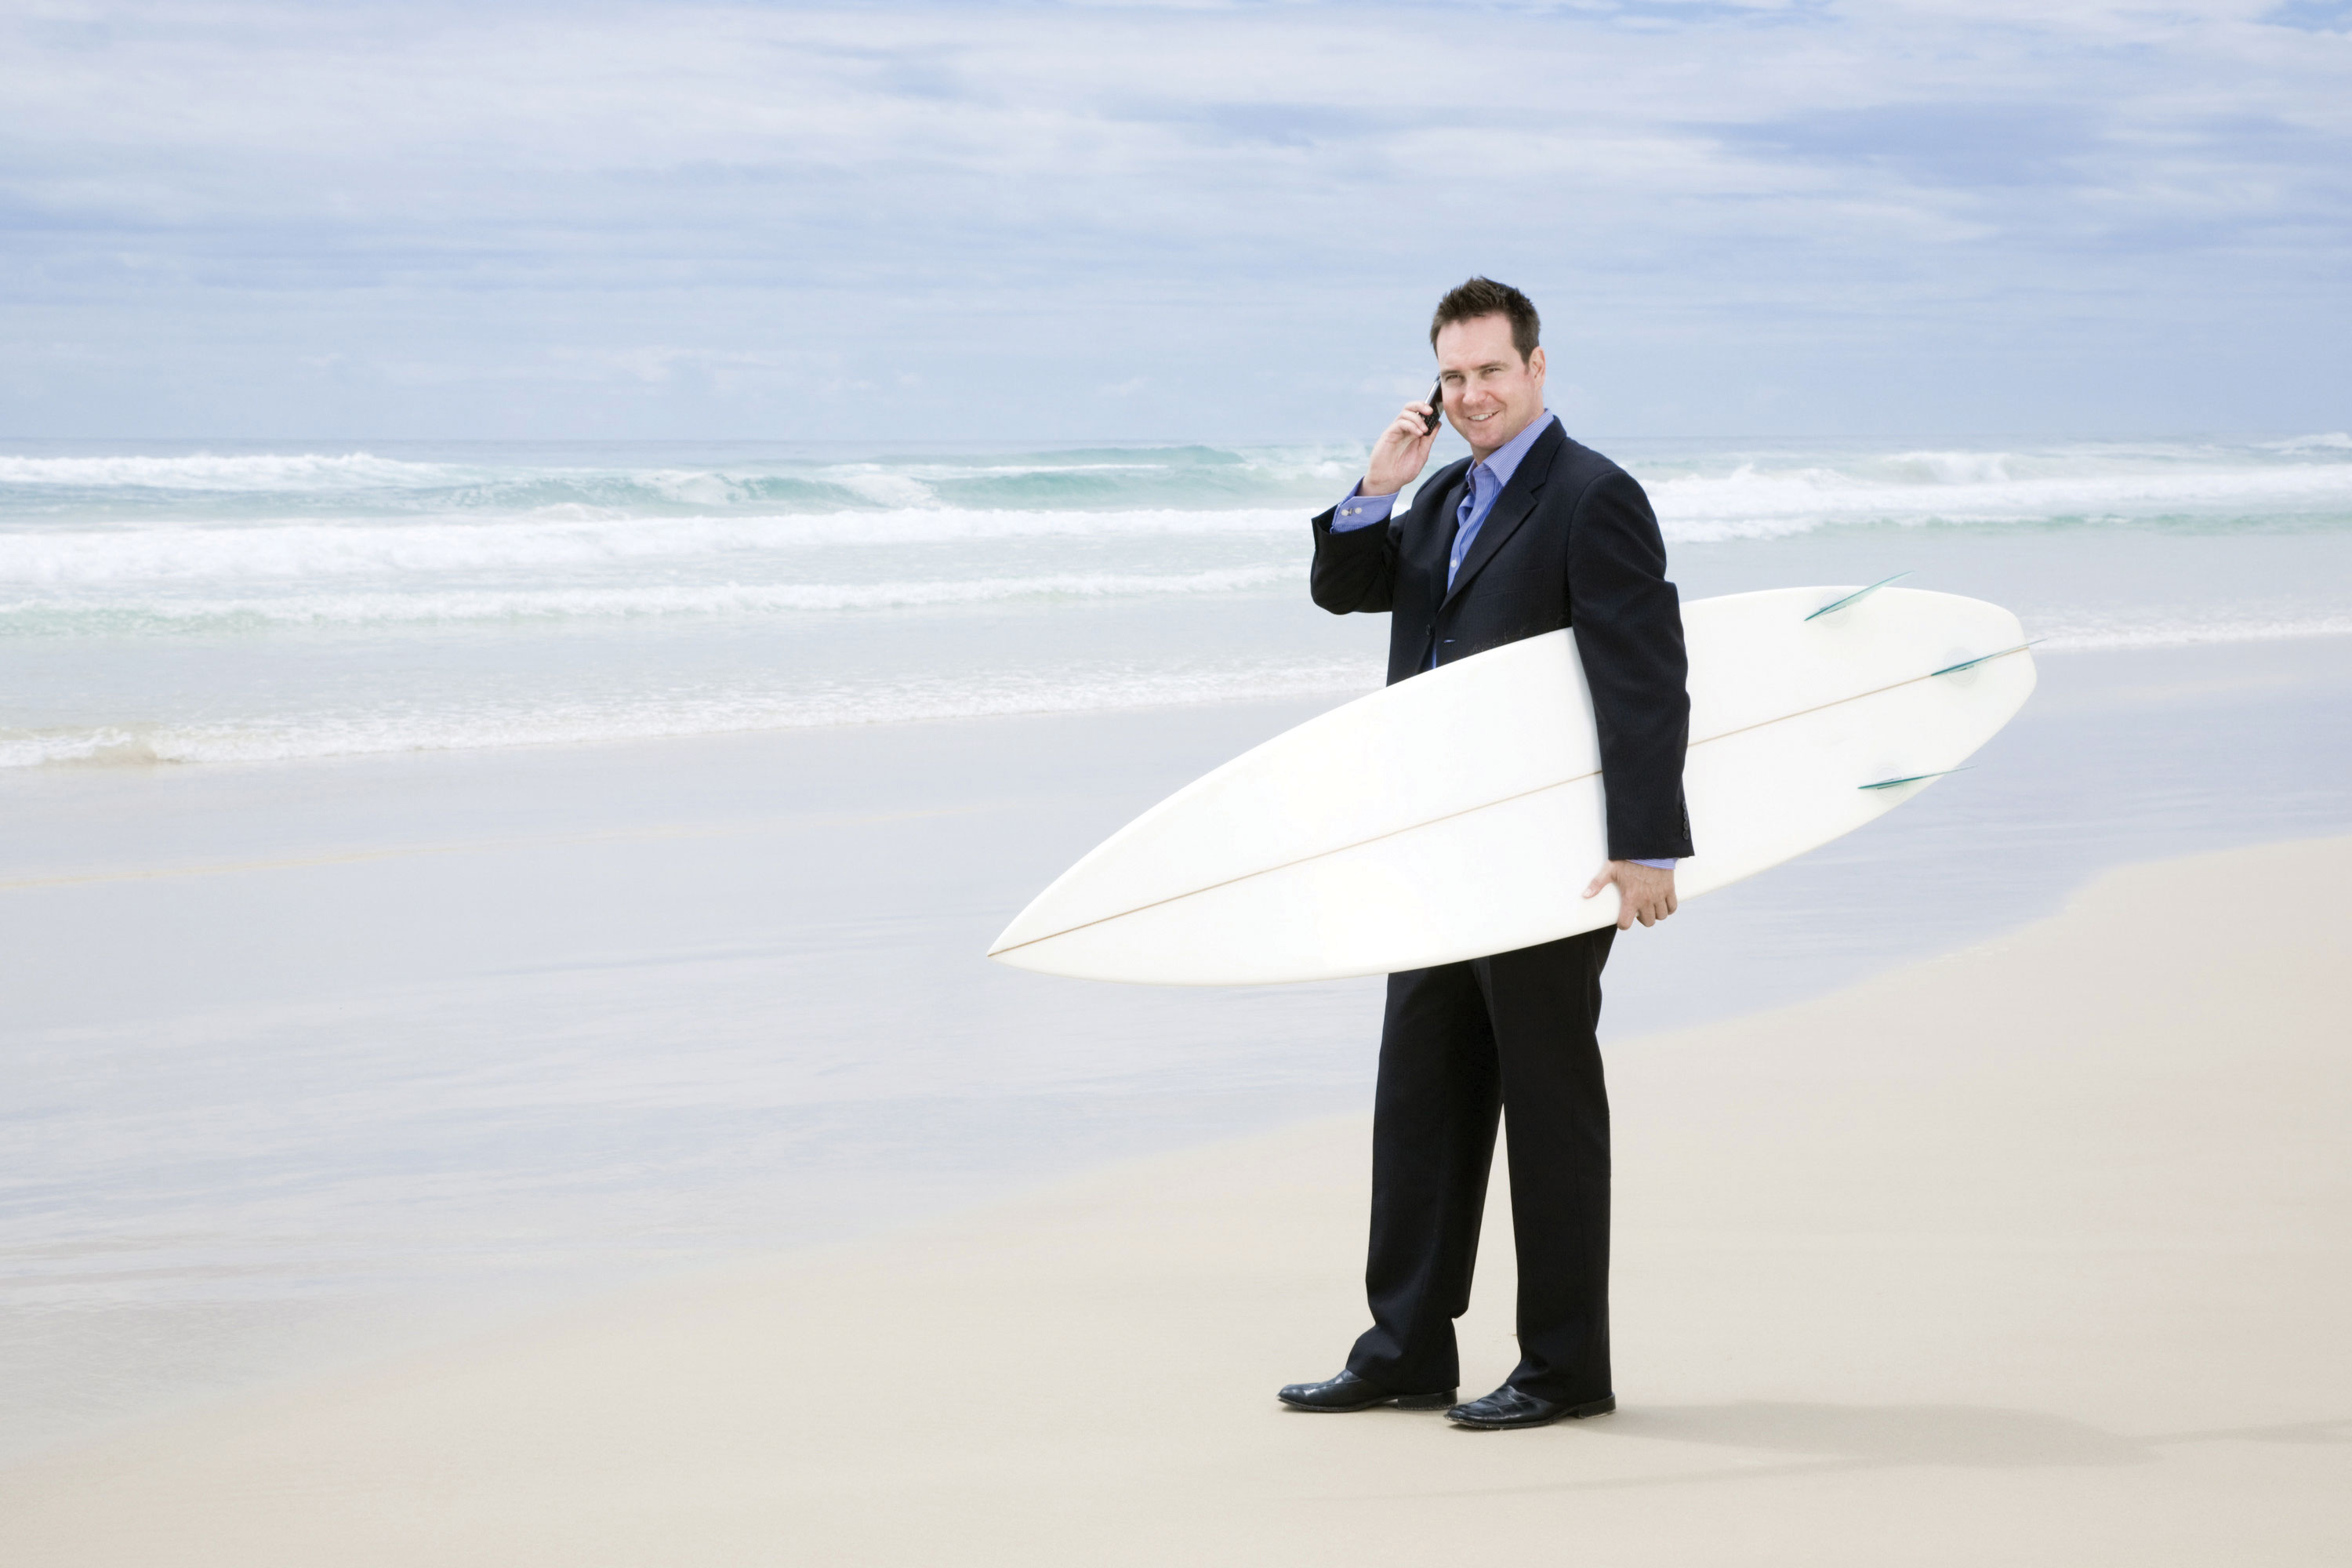 Shellharbour-man in suit with surfboard